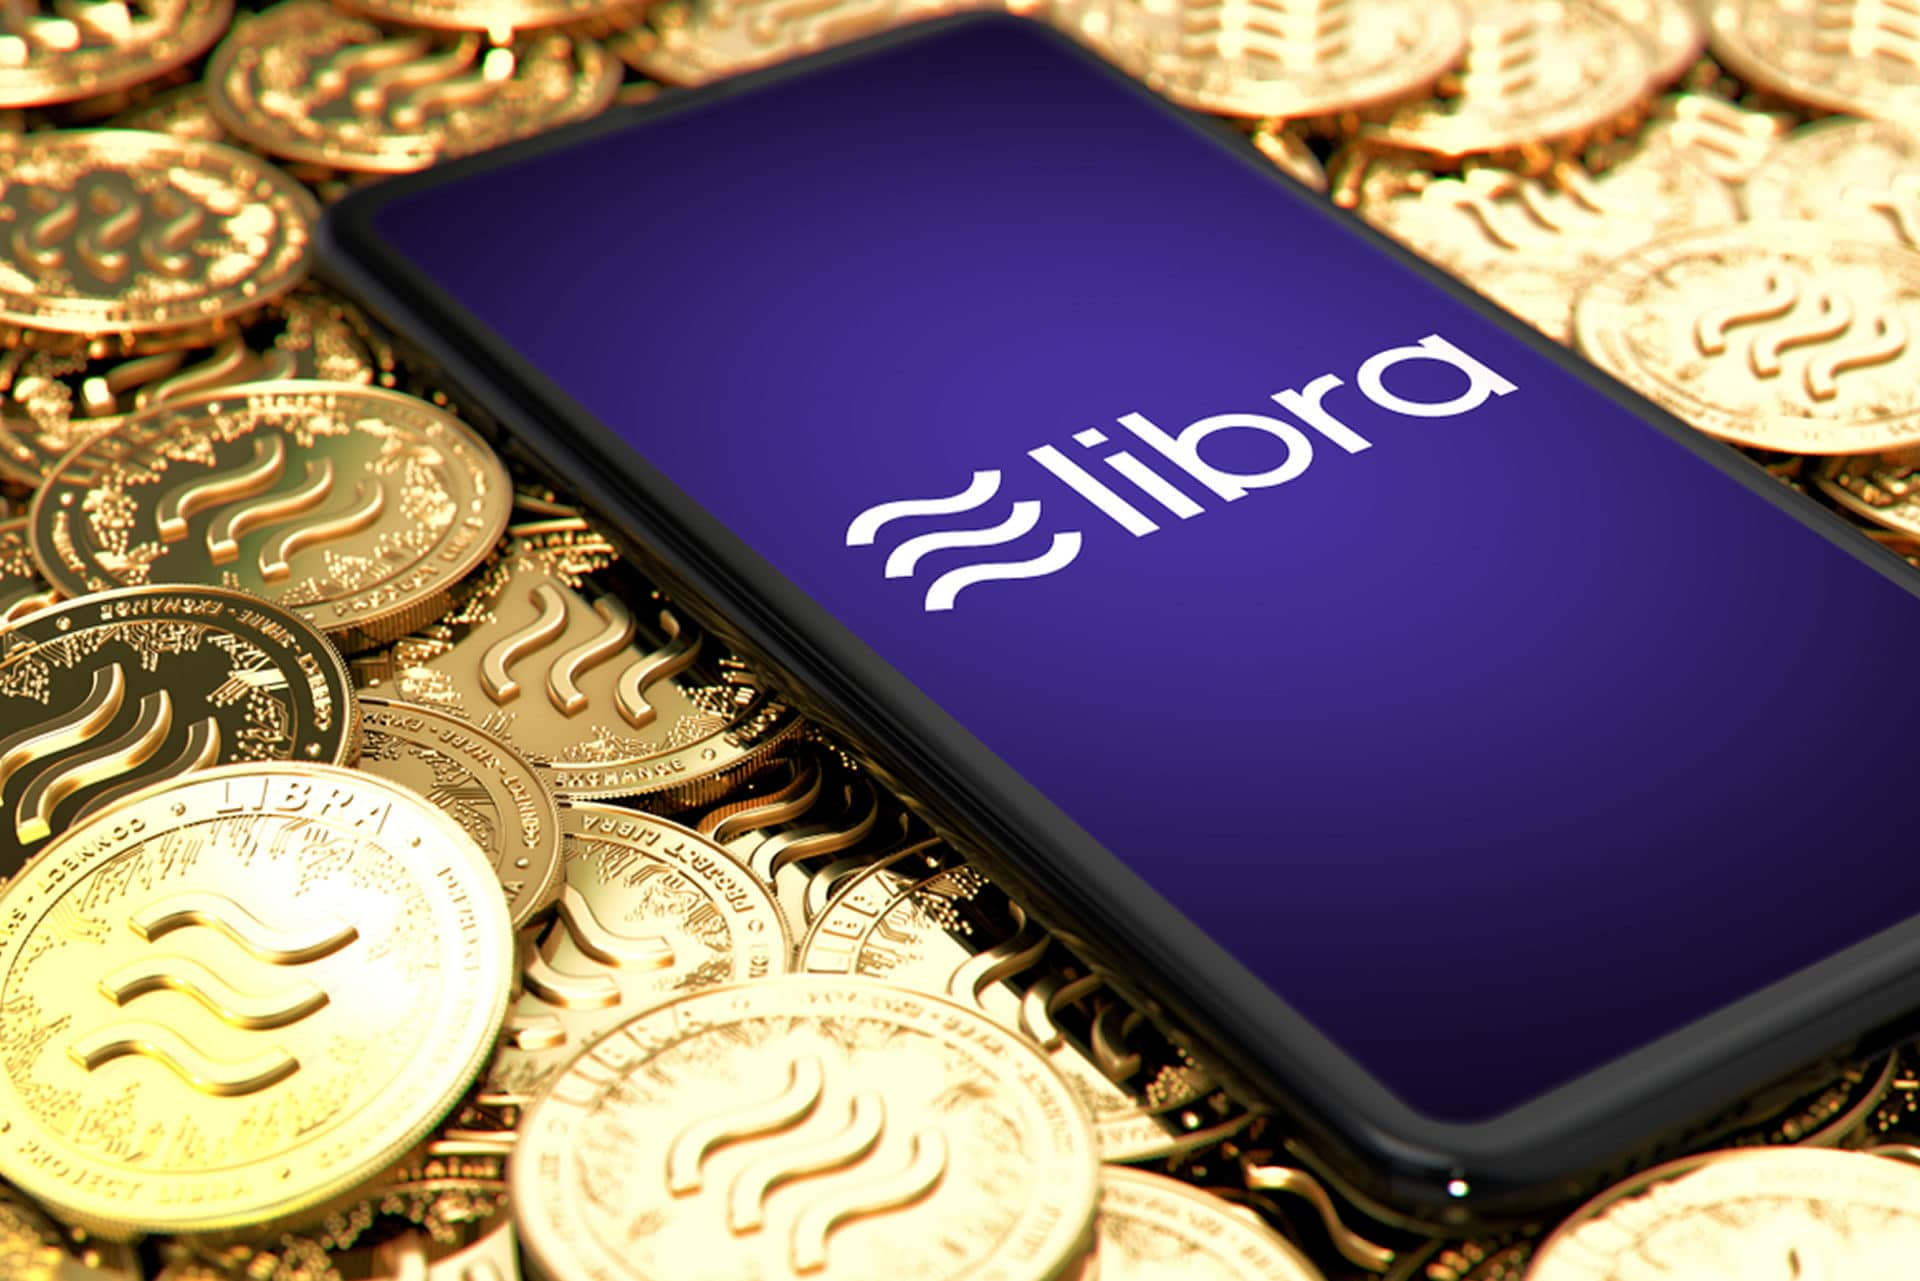 Libra Currency by Facebook